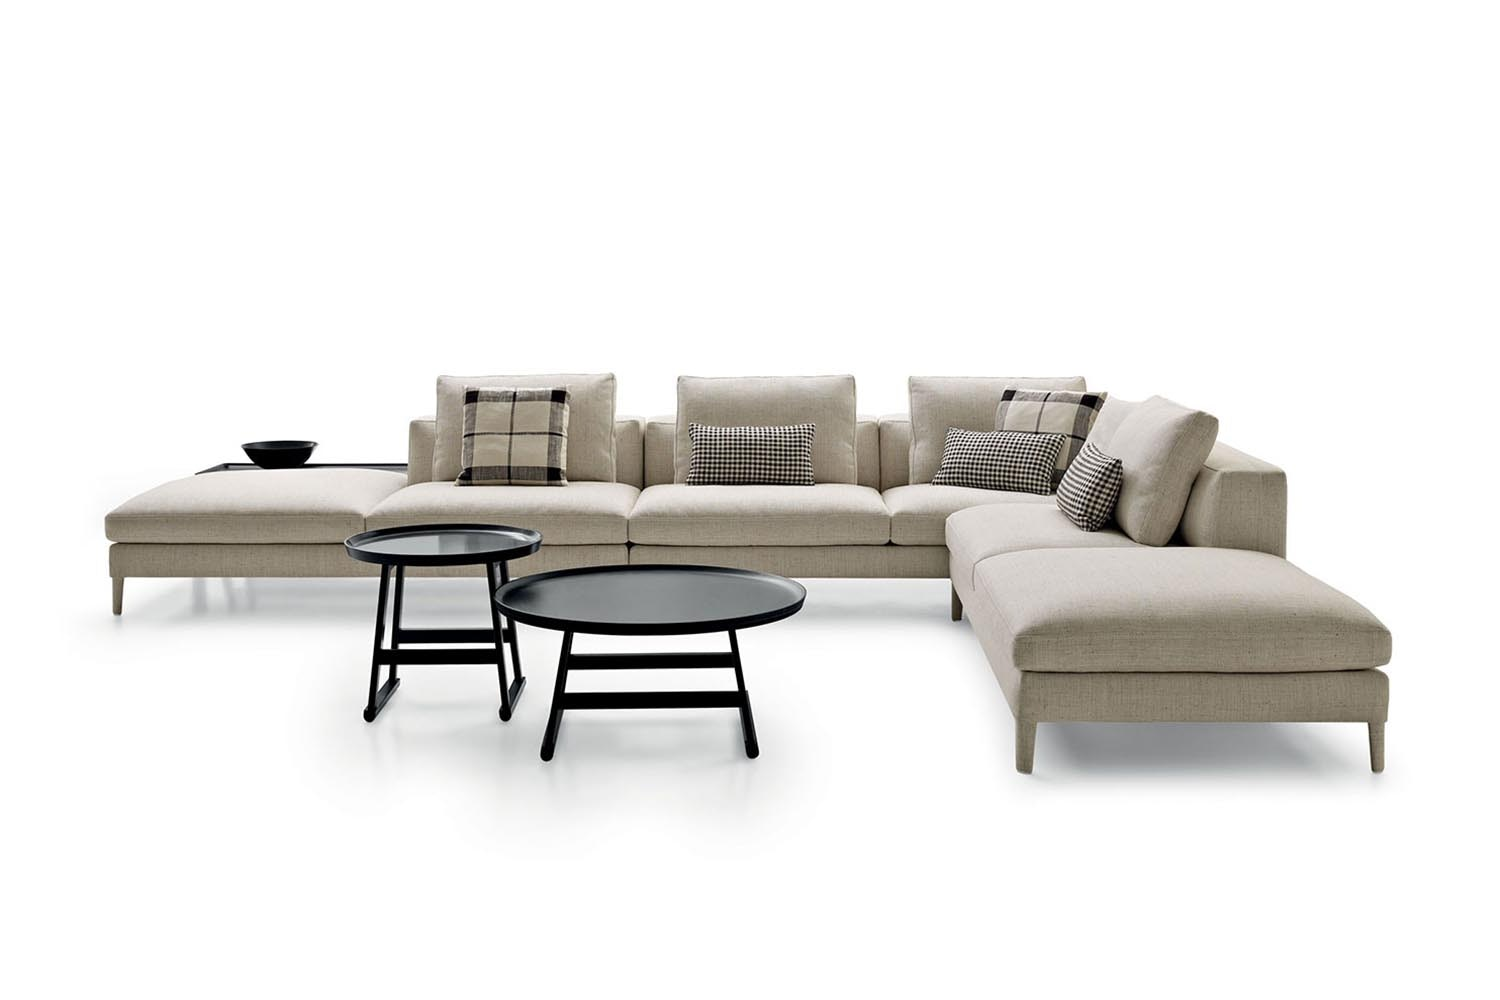 Dives Sofa by Antonio Citterio for Maxalto